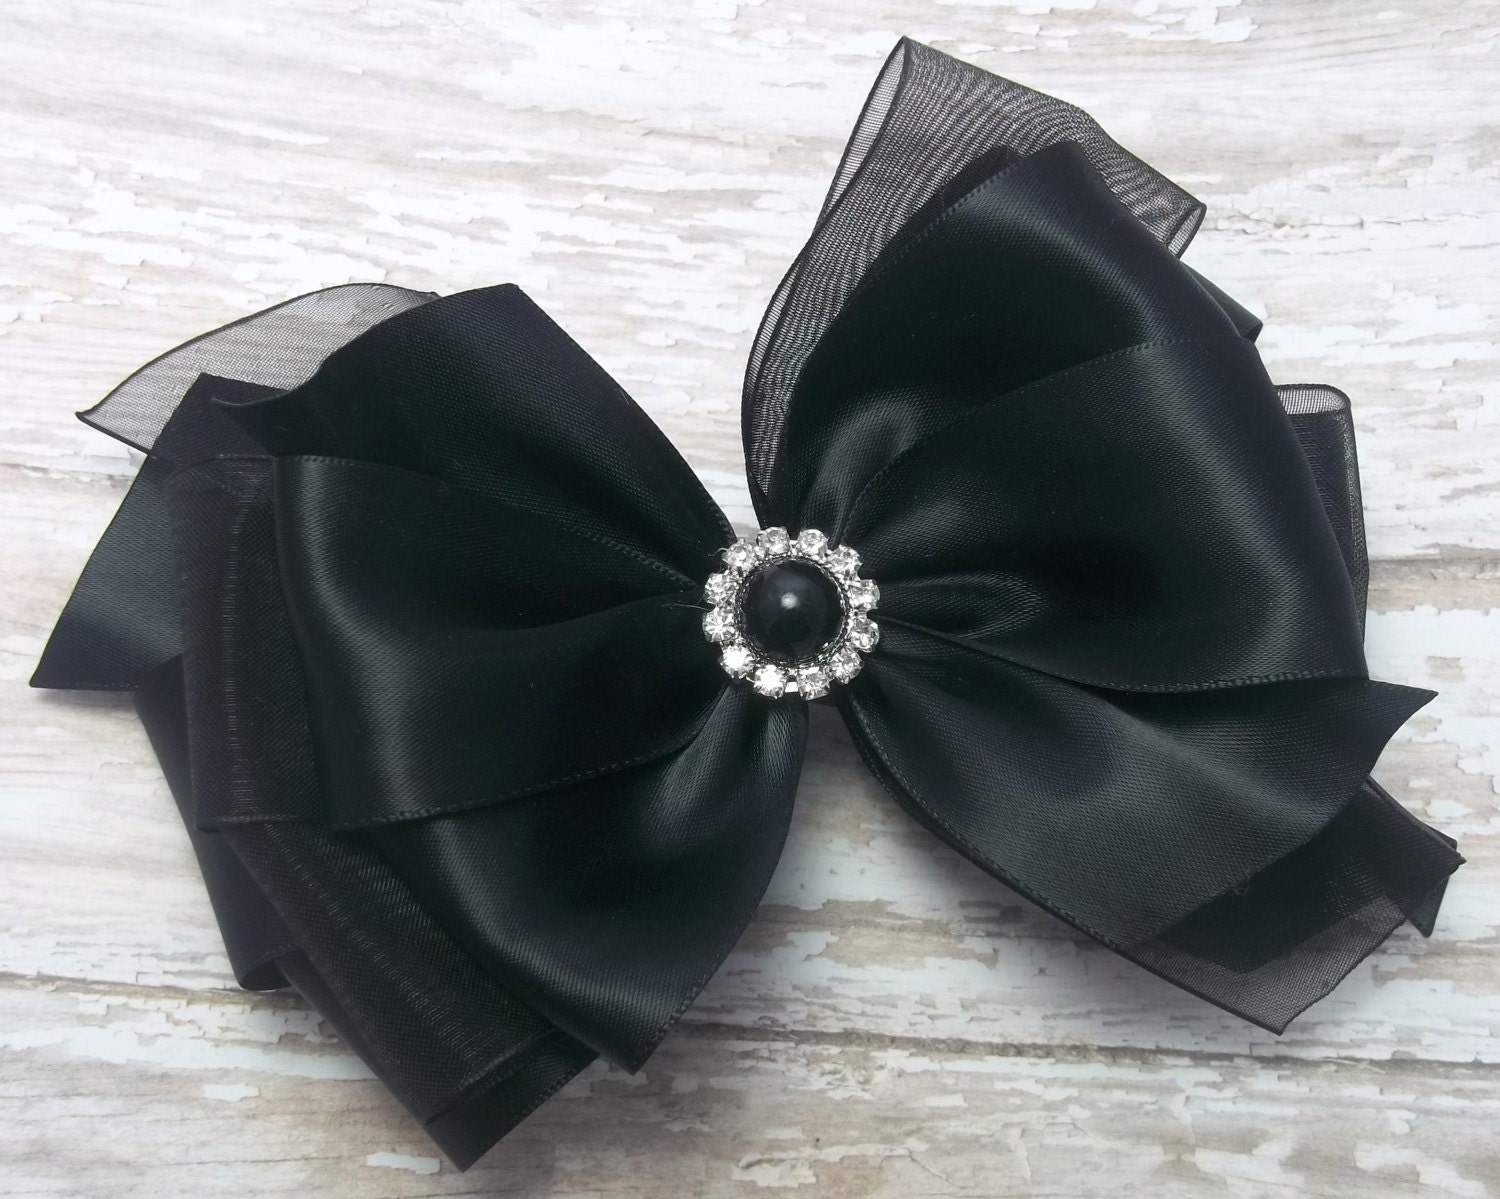 The black satin silk bow tie is the most popular black bow tie out there simply because most tuxedo lapels are faced with satin. Traditionally, the material of the bow tie should match the tuxedo lapels it is paired with, and so satin is the number one choice.